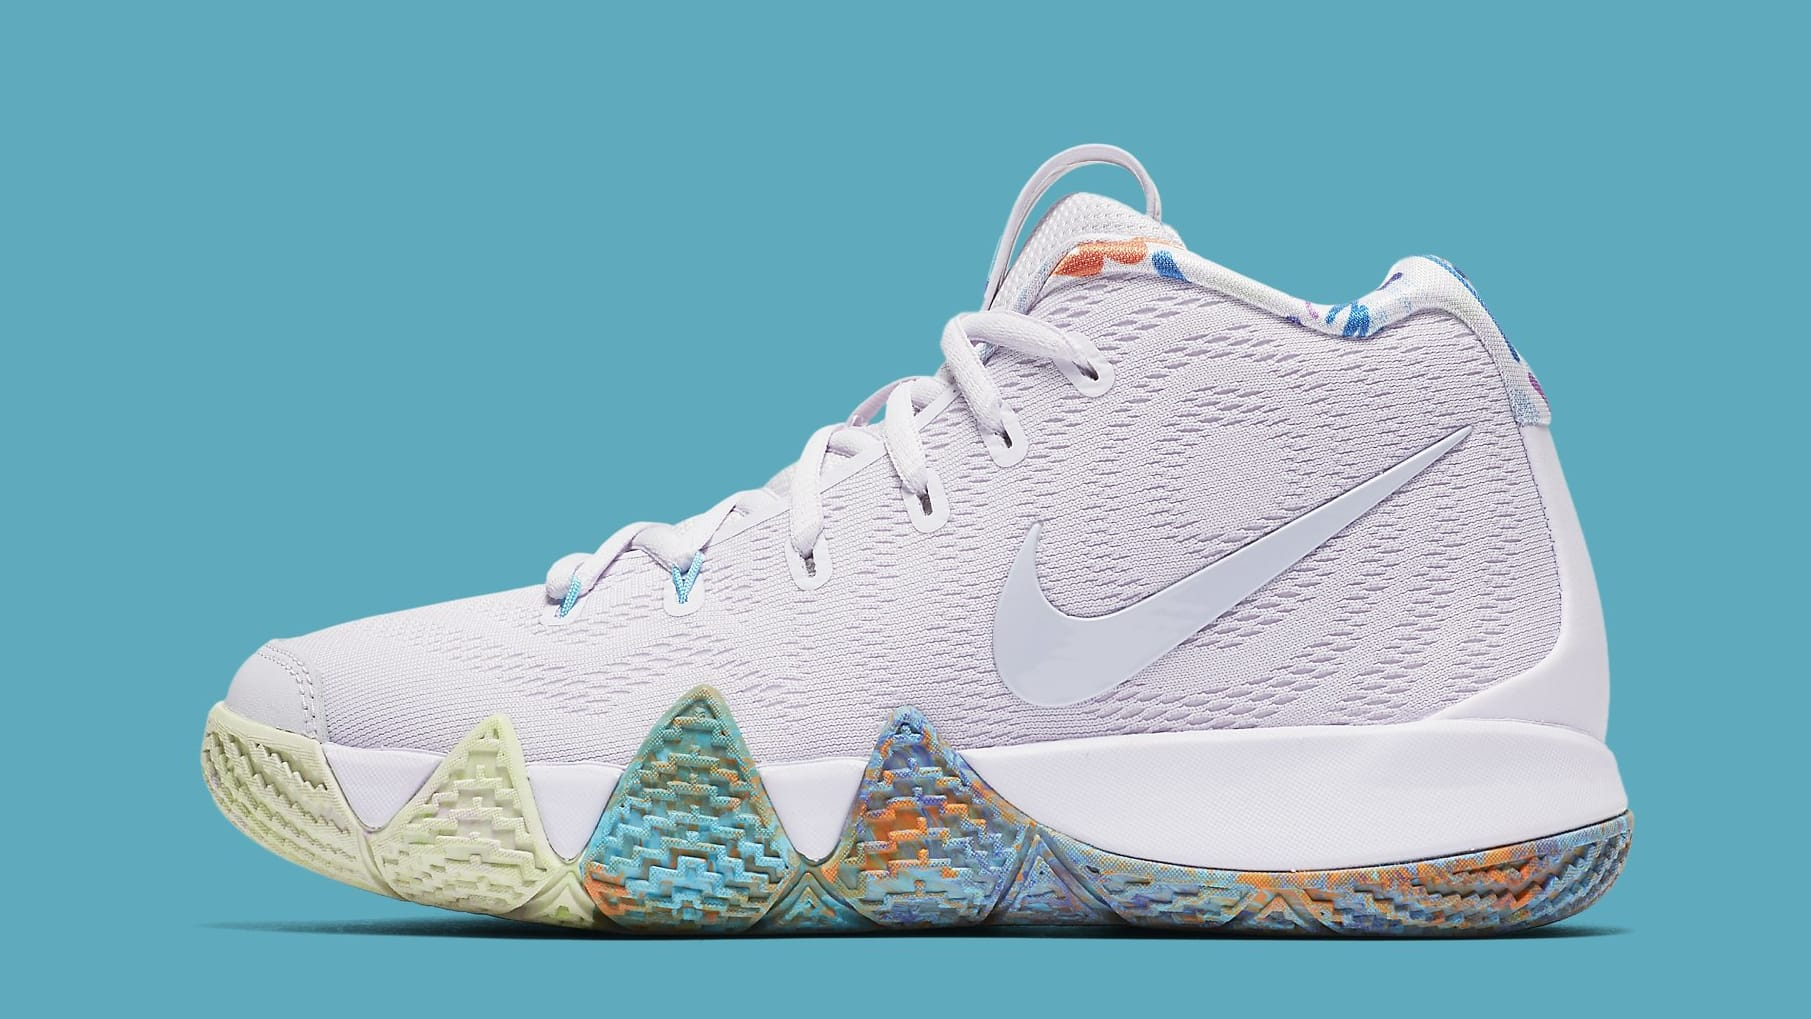 5a6797df6521 ... germany nike kyrie 4 90s release date aa2897 902 9a9a4 1052f